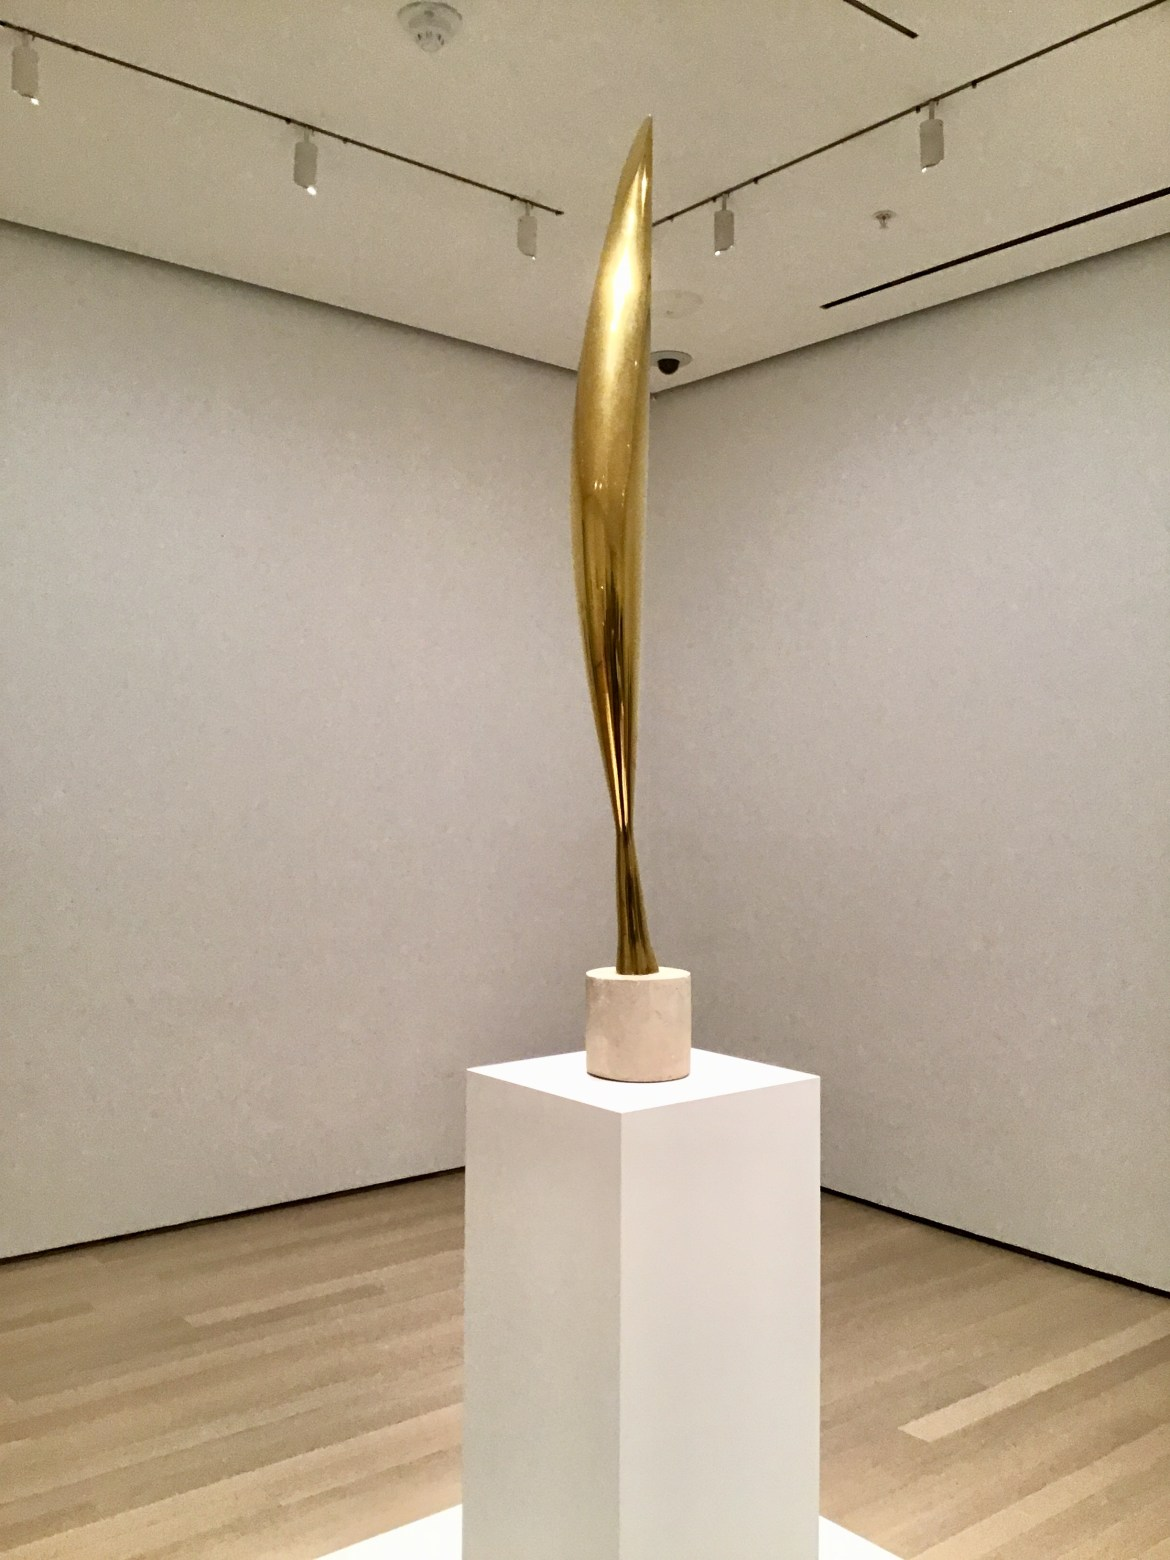 Constantin Brancusi's Sculpture Exhibition at the Museum of Modern Art in New York City (Photo: Ceara Rossetti/Gildshire)